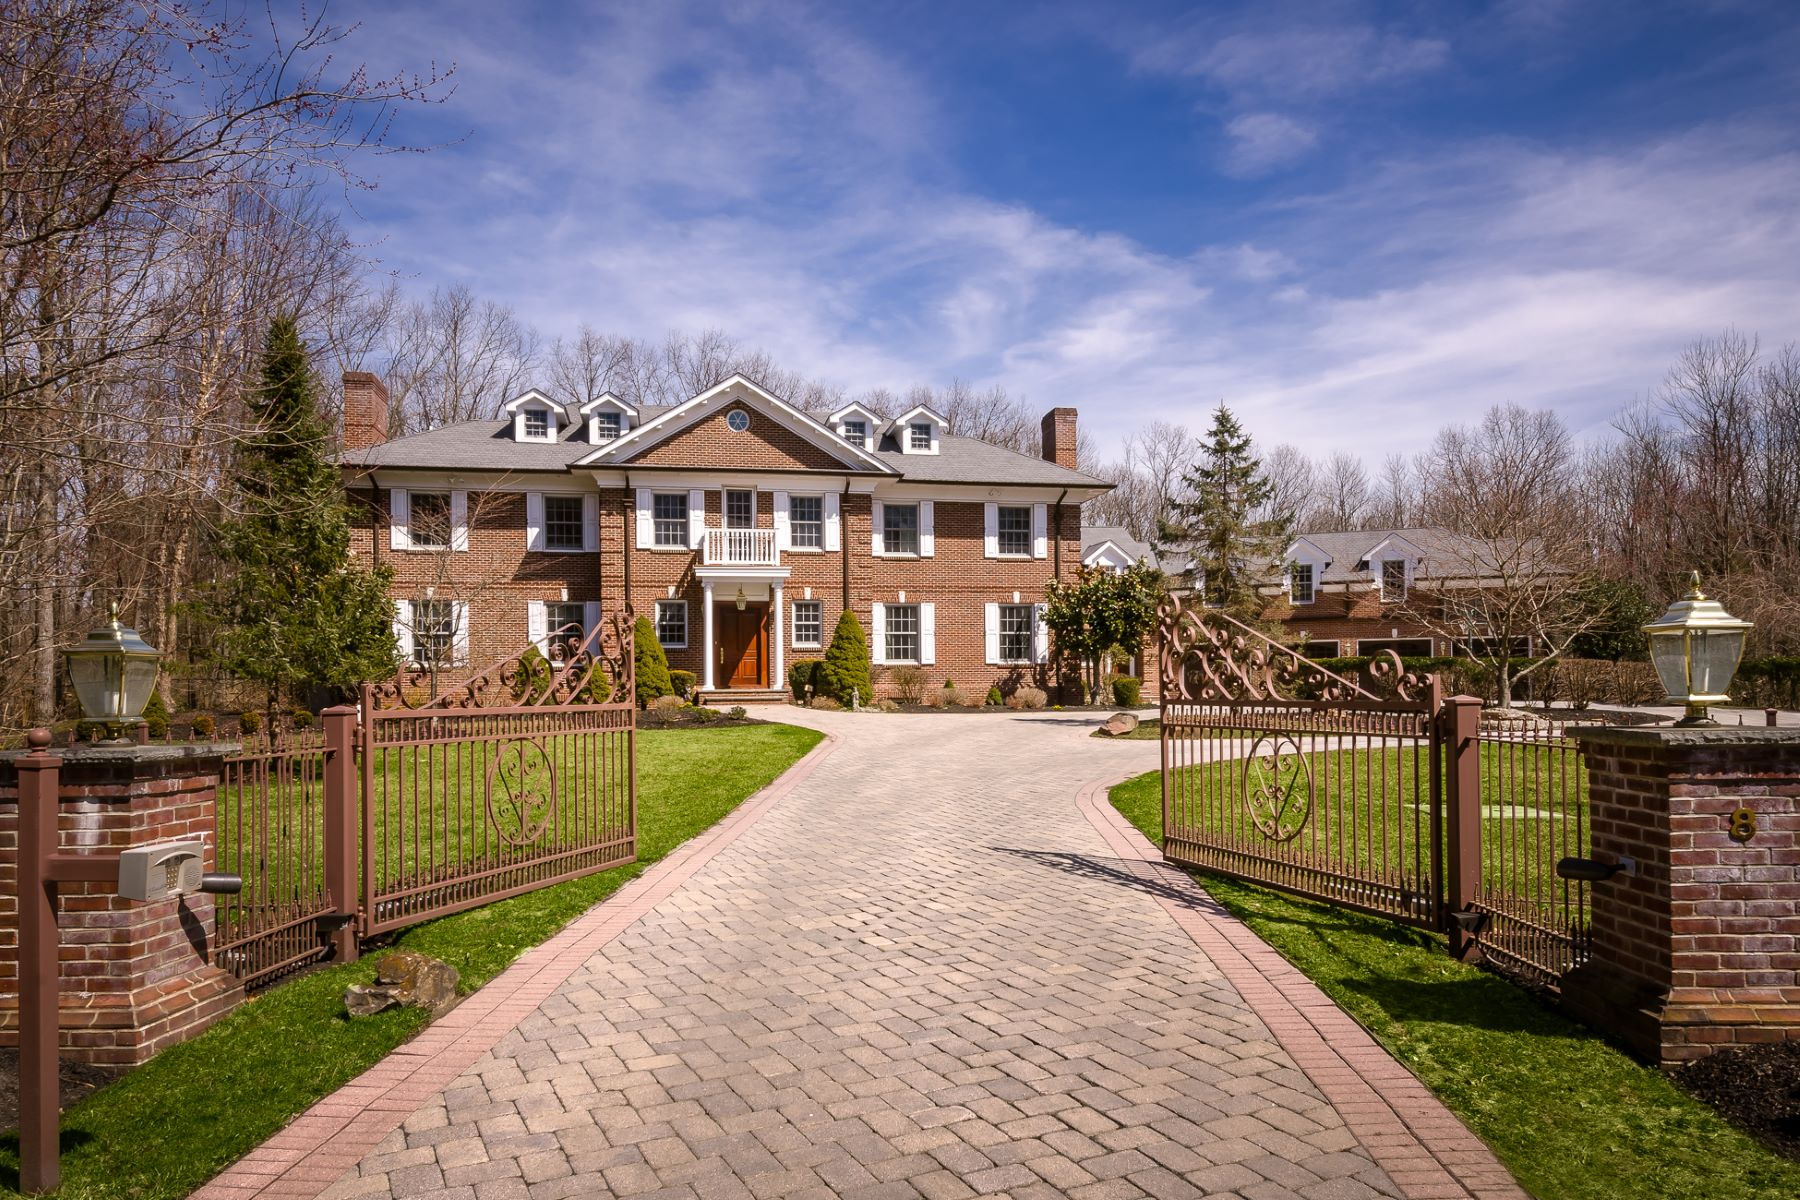 Vivienda unifamiliar por un Venta en Stonybrook Manor: Once-in-a-Lifetime Magnificence 8 Players Lane, Princeton, Nueva Jersey 08540 Estados UnidosEn/Alrededor: Lawrence Township